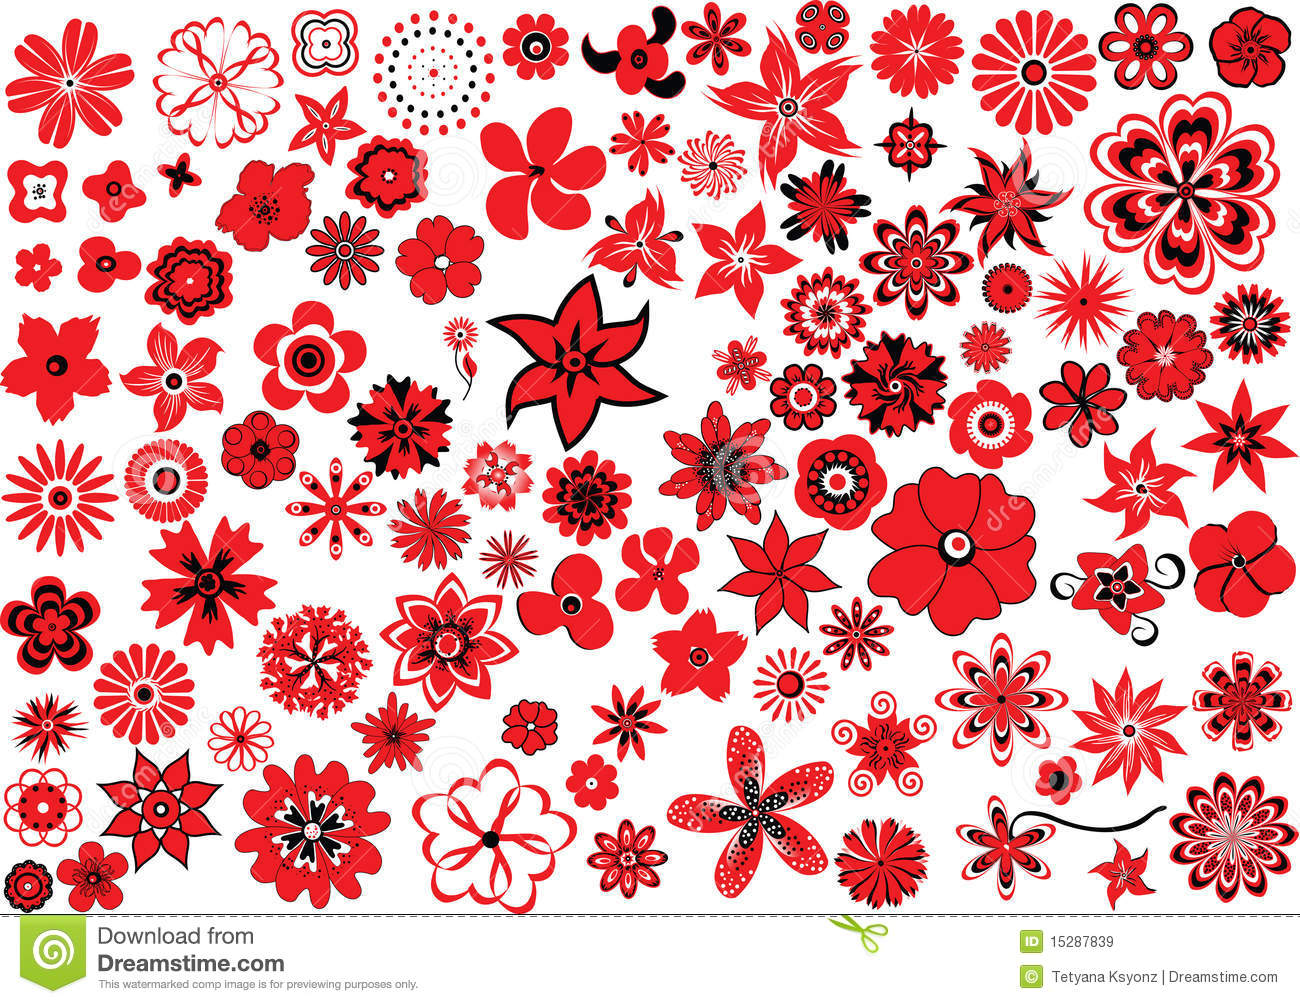 100 Flowers Royalty Free Stock Image